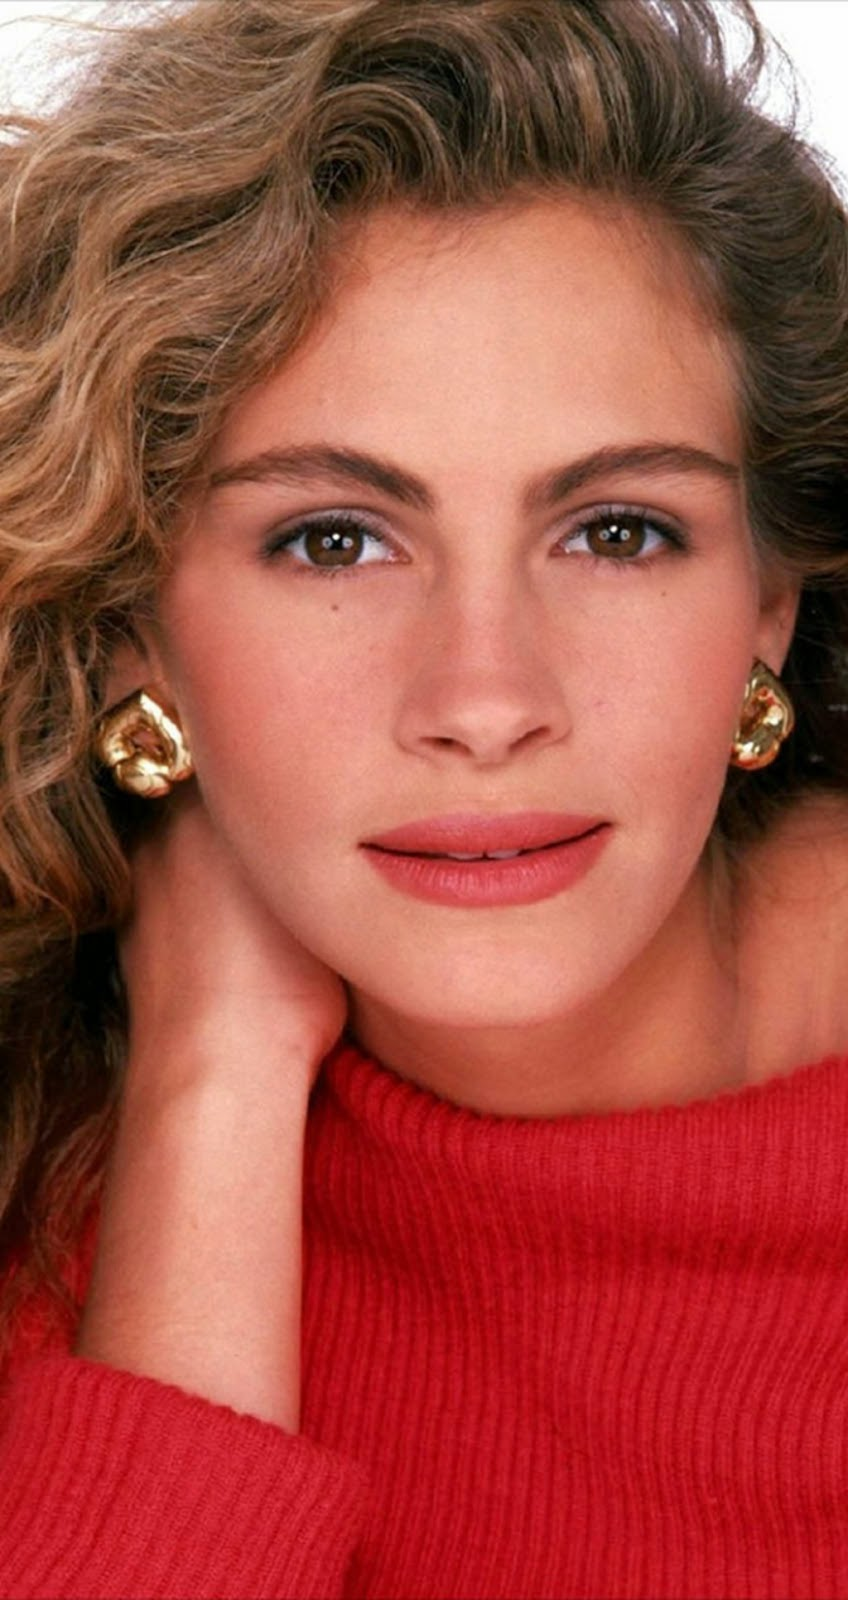 PHOTO AND NEWS PLUS-PRETTY WOMAN JULIA ROBERTS WALLPAPER -1932 X 1024 beatles music, chicago tribune, digital spy, dvd, eat pray love, julia roberts, julia roberts news, mtv. amazon, vancouver sun